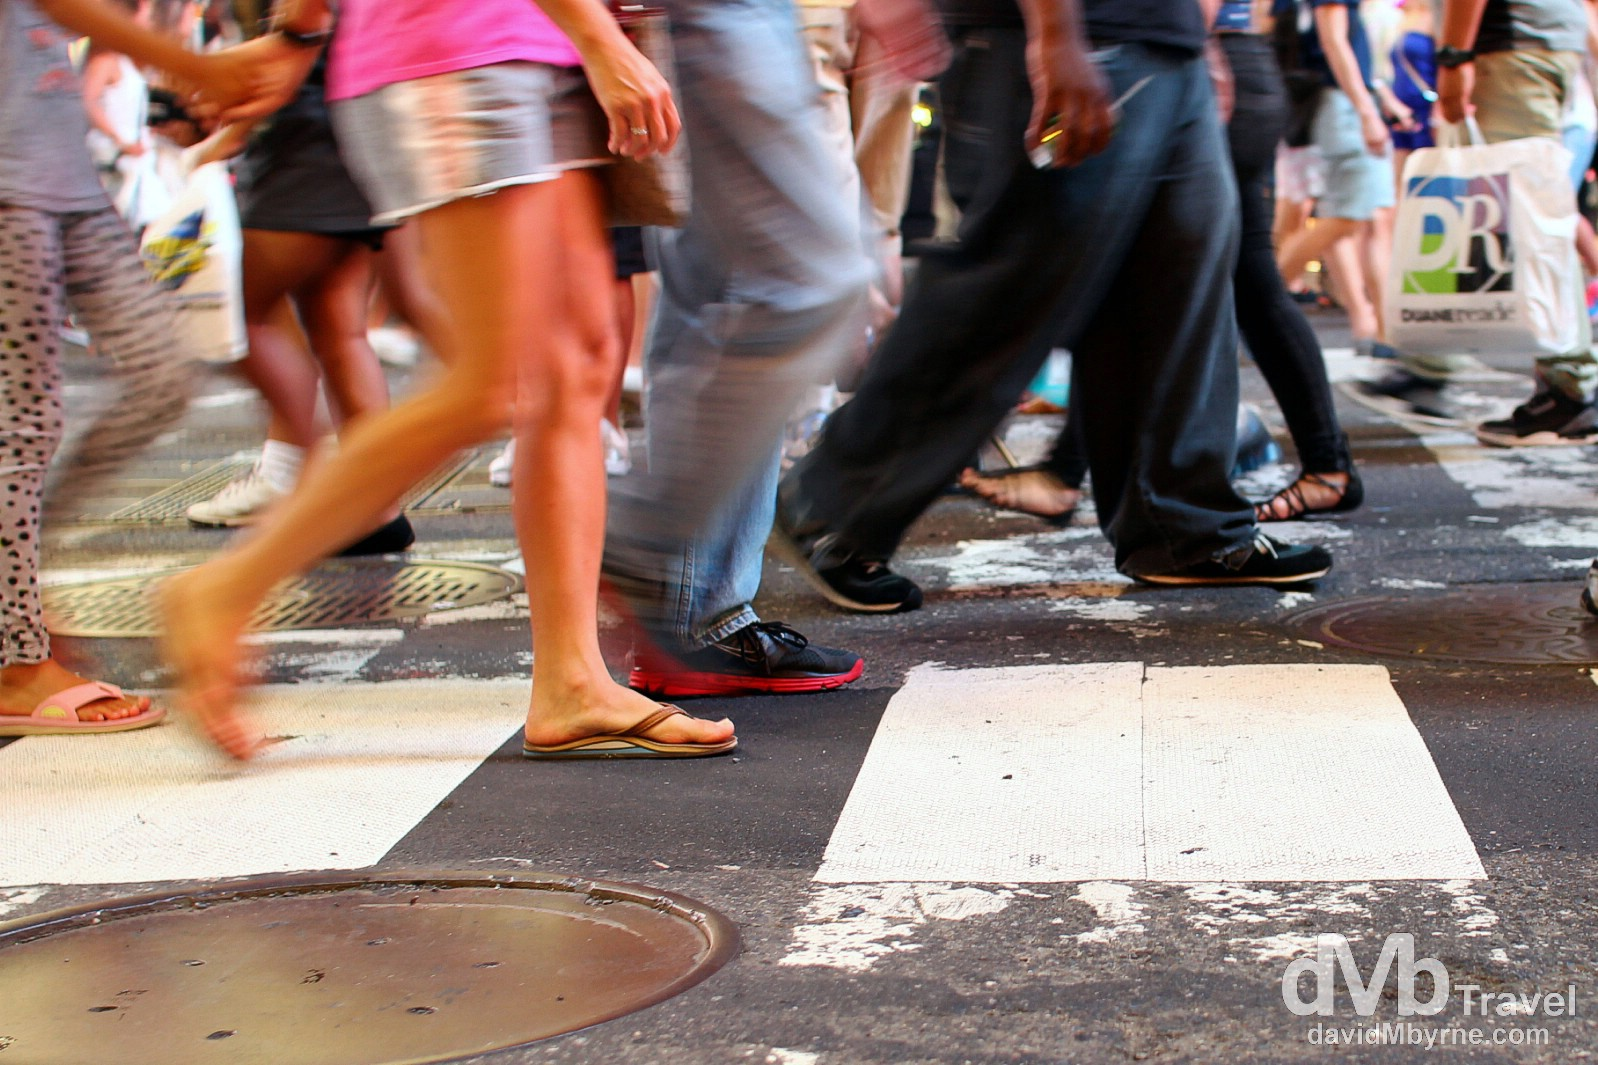 Walkers in a busy Times Square, Manhattan, New York. July 13th 2013.